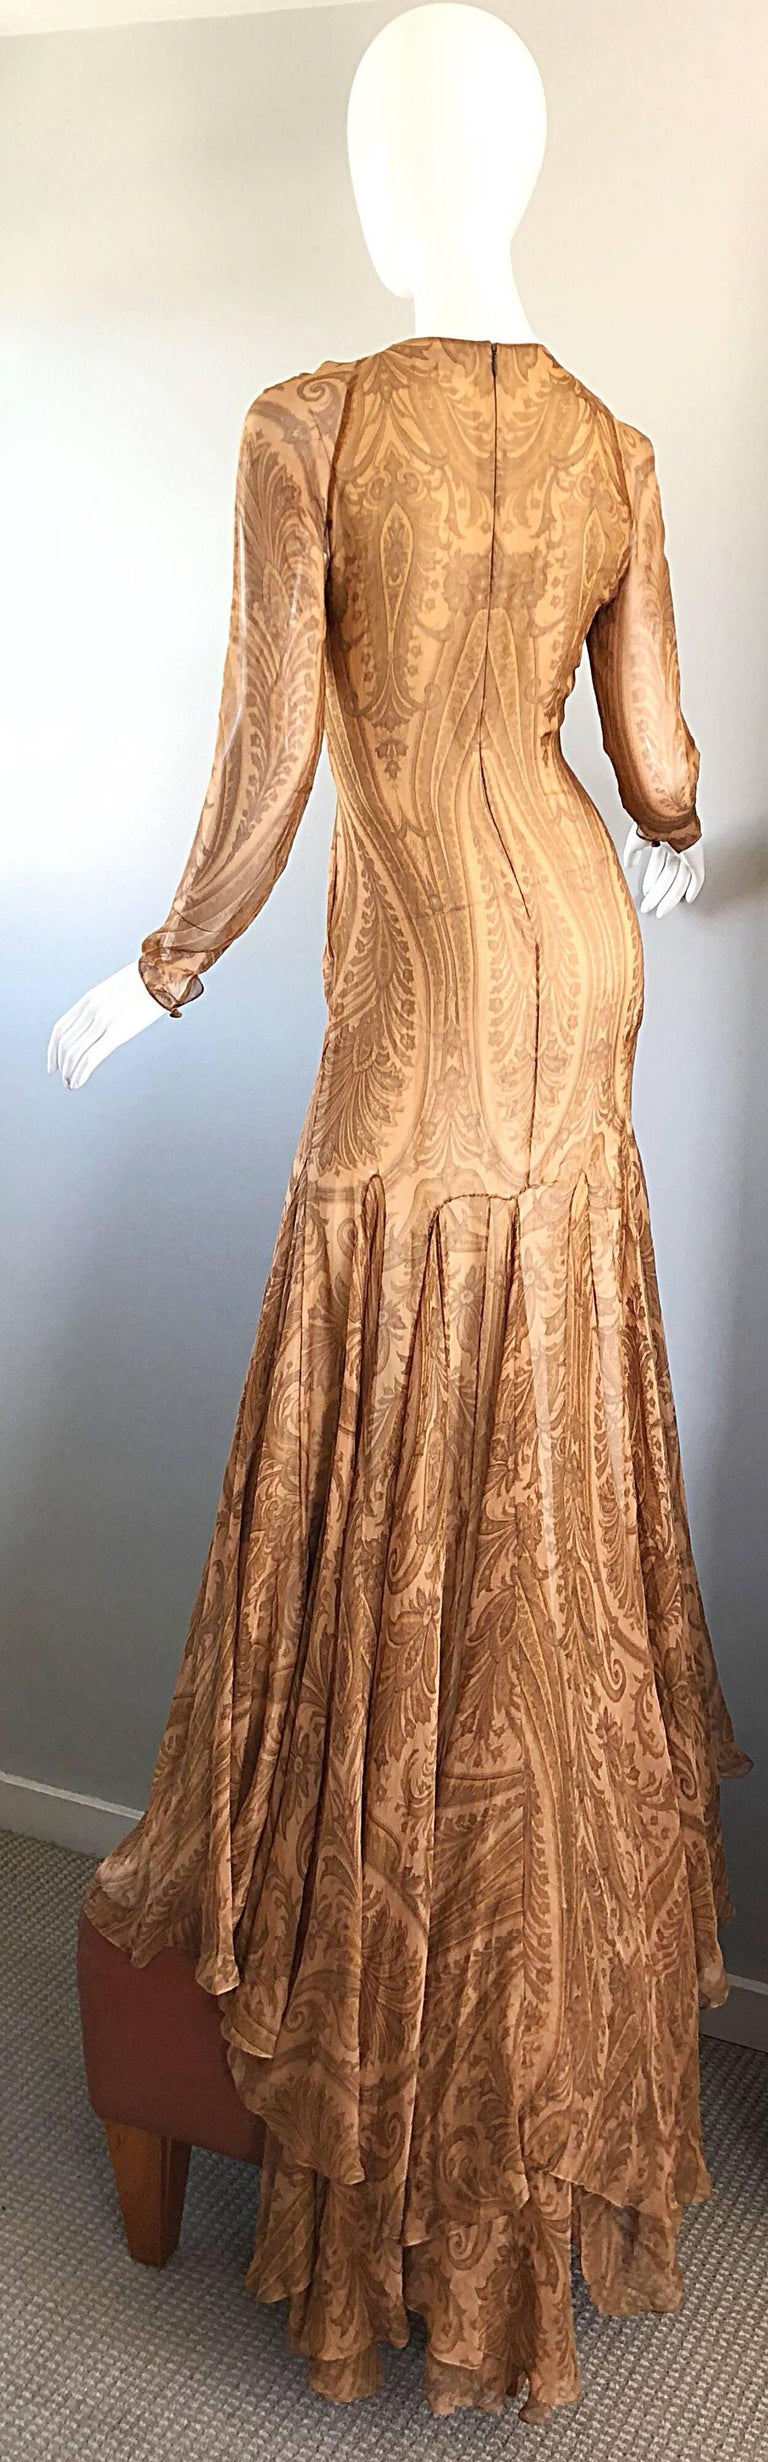 Sensational 1990s Bill Blass Couture Nude Silk Chiffon Paisley Vintage 90s Gown  For Sale 2